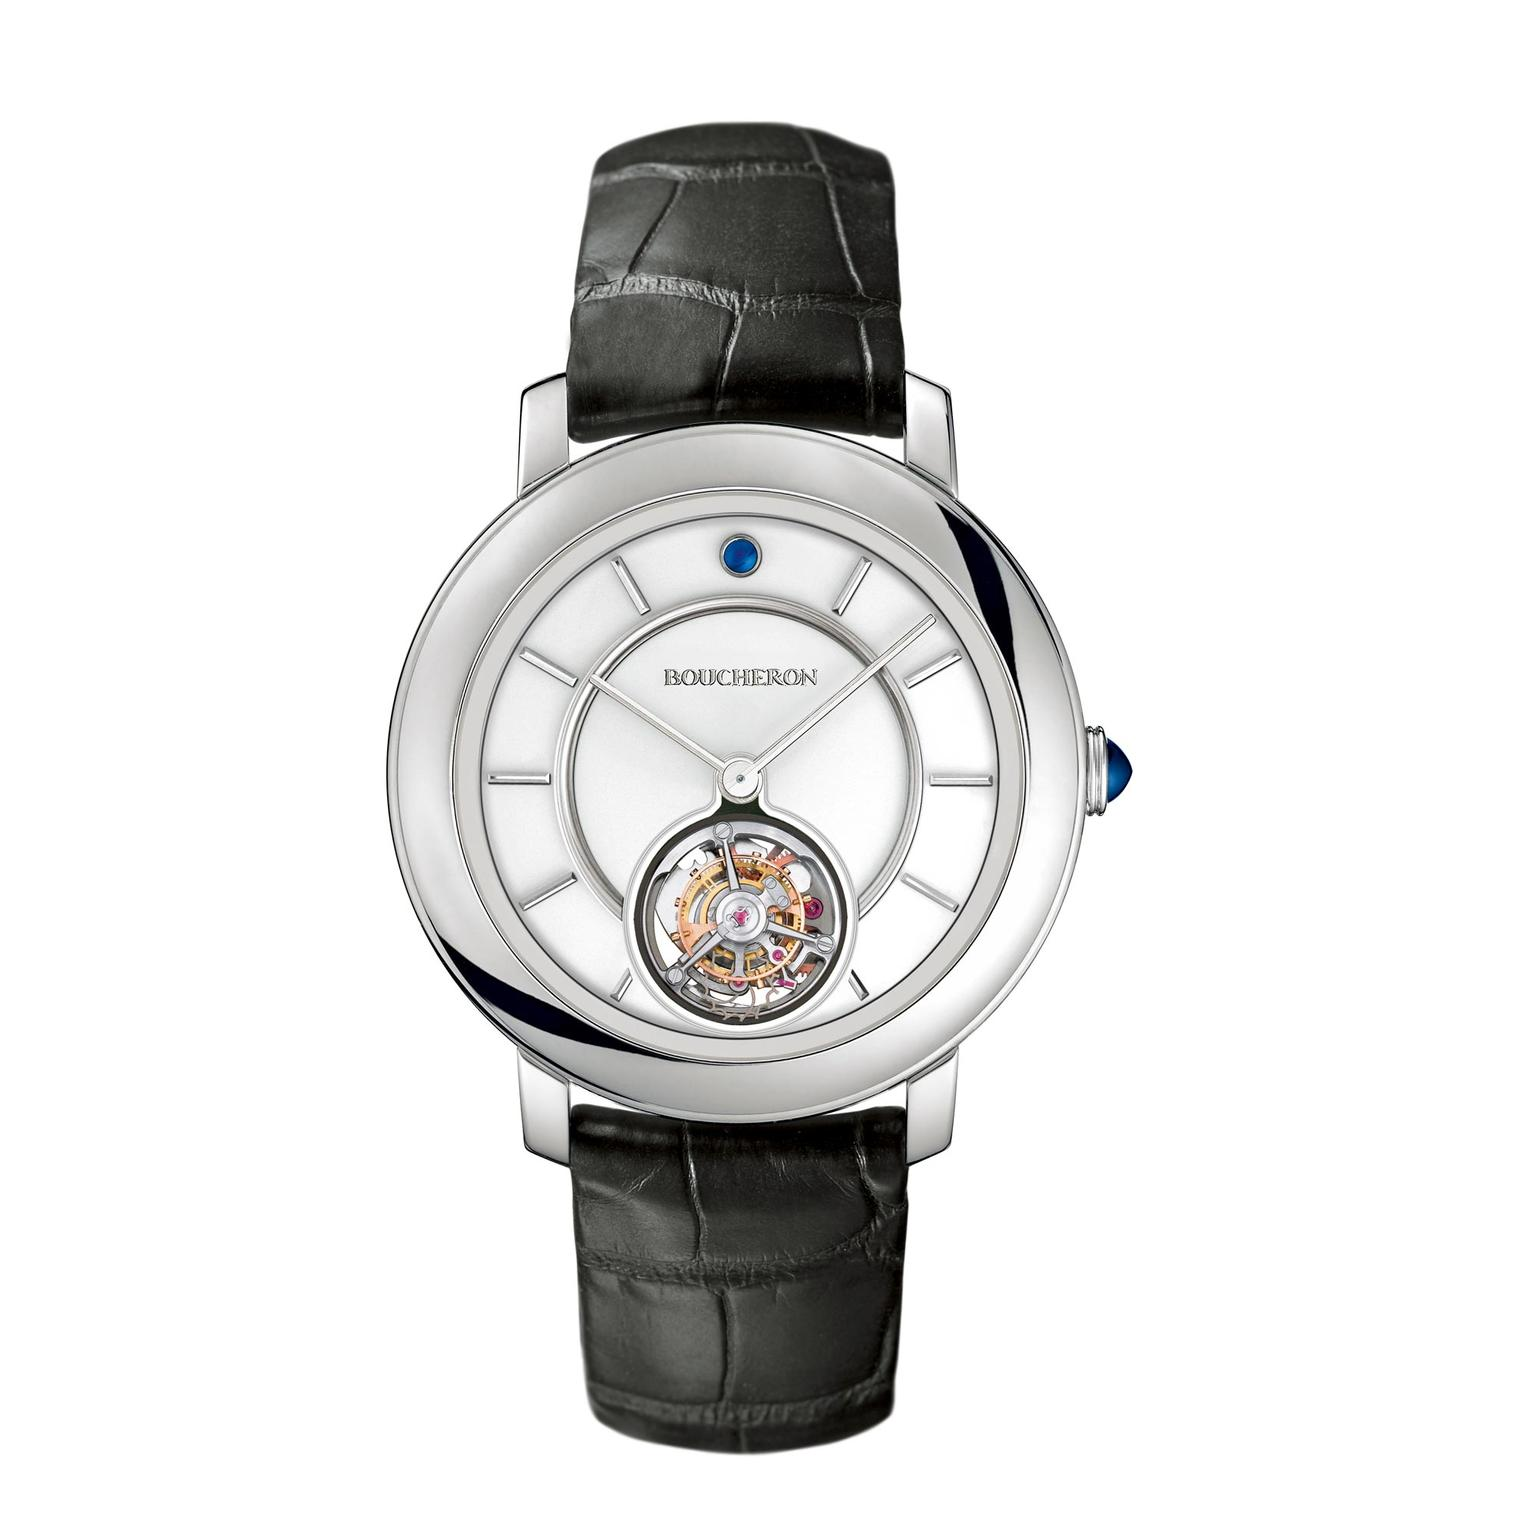 Boucheron Epure Tourbillon watch